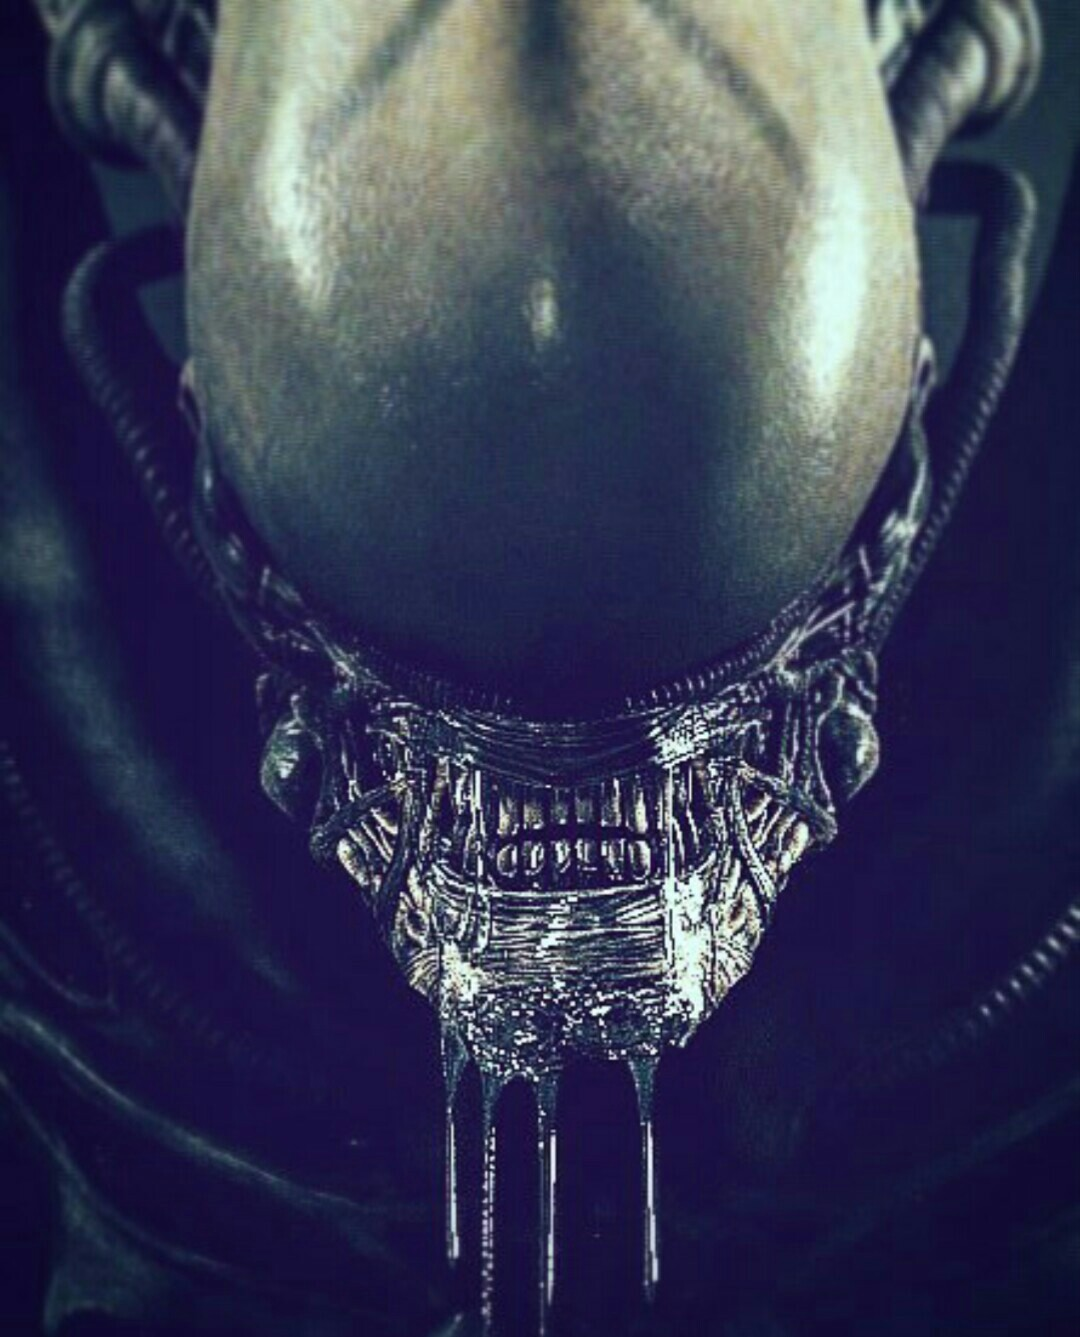 Alien: Covenant filming culmination celebratory piece